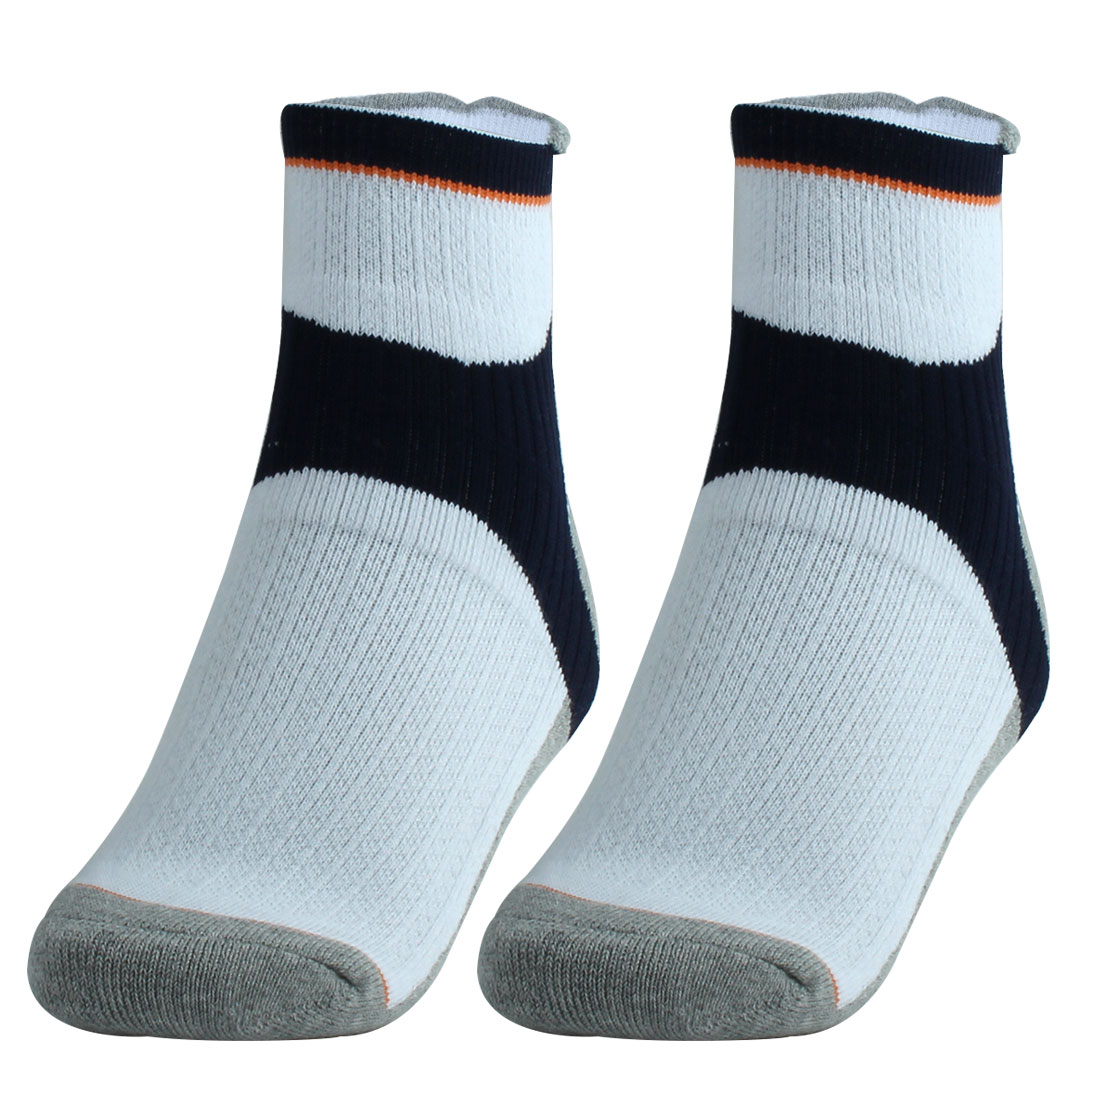 R-BAO Authorized Adult Tennis Workout Mountain Bike Cycling Socks Navy Blue Pair